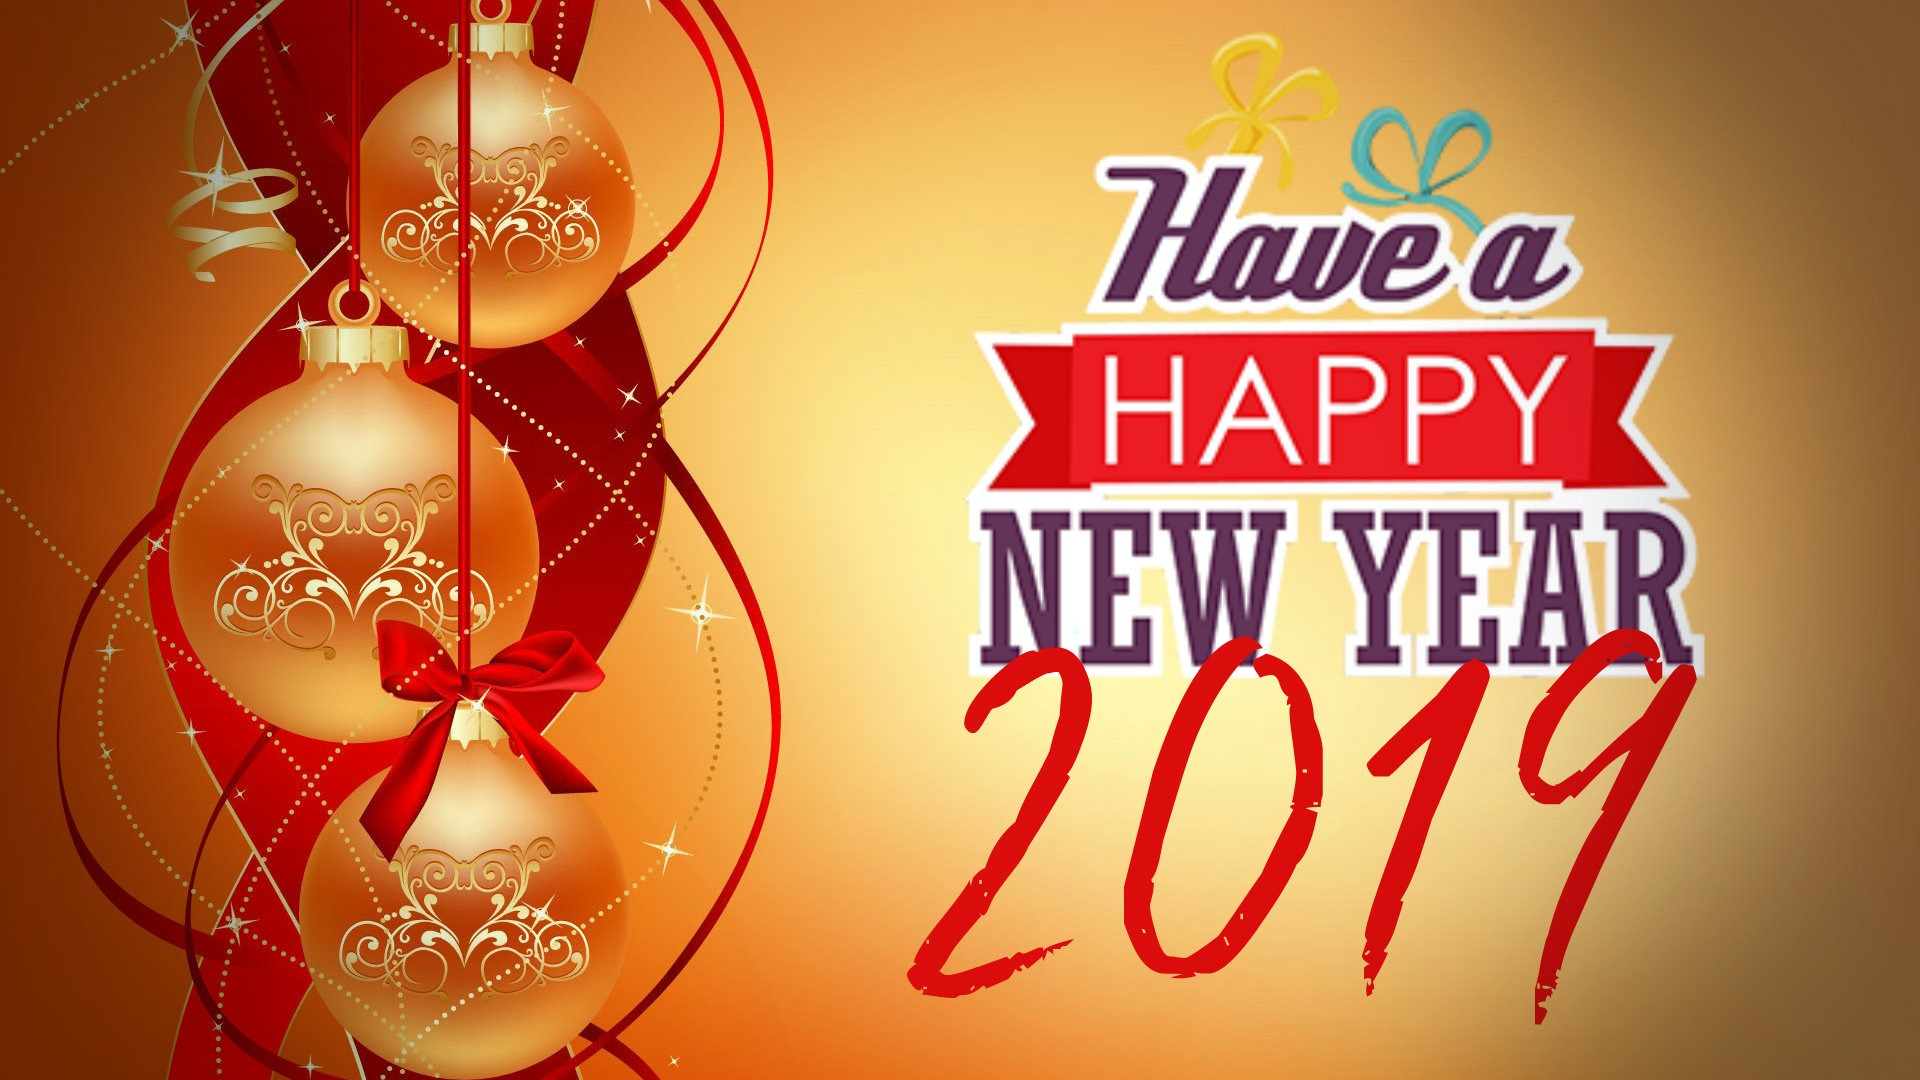 happy new year 2019 best wishes images quotes messages to share on facebook